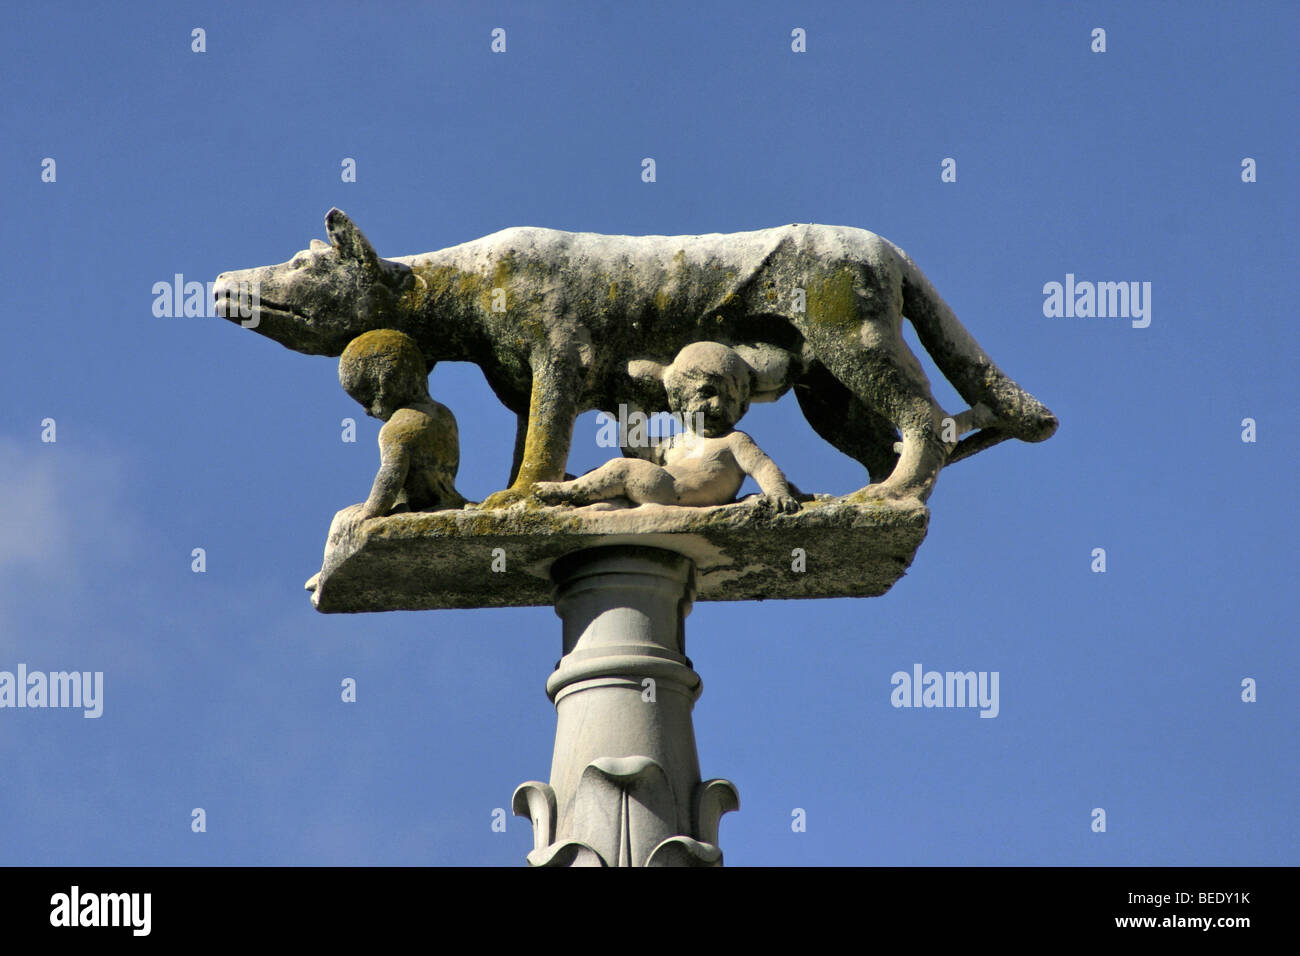 Sculpture of wolfe with Romulus and Remus on column in Siena, Tuscany, Italy, close-up, Symbol of Rome - Stock Image